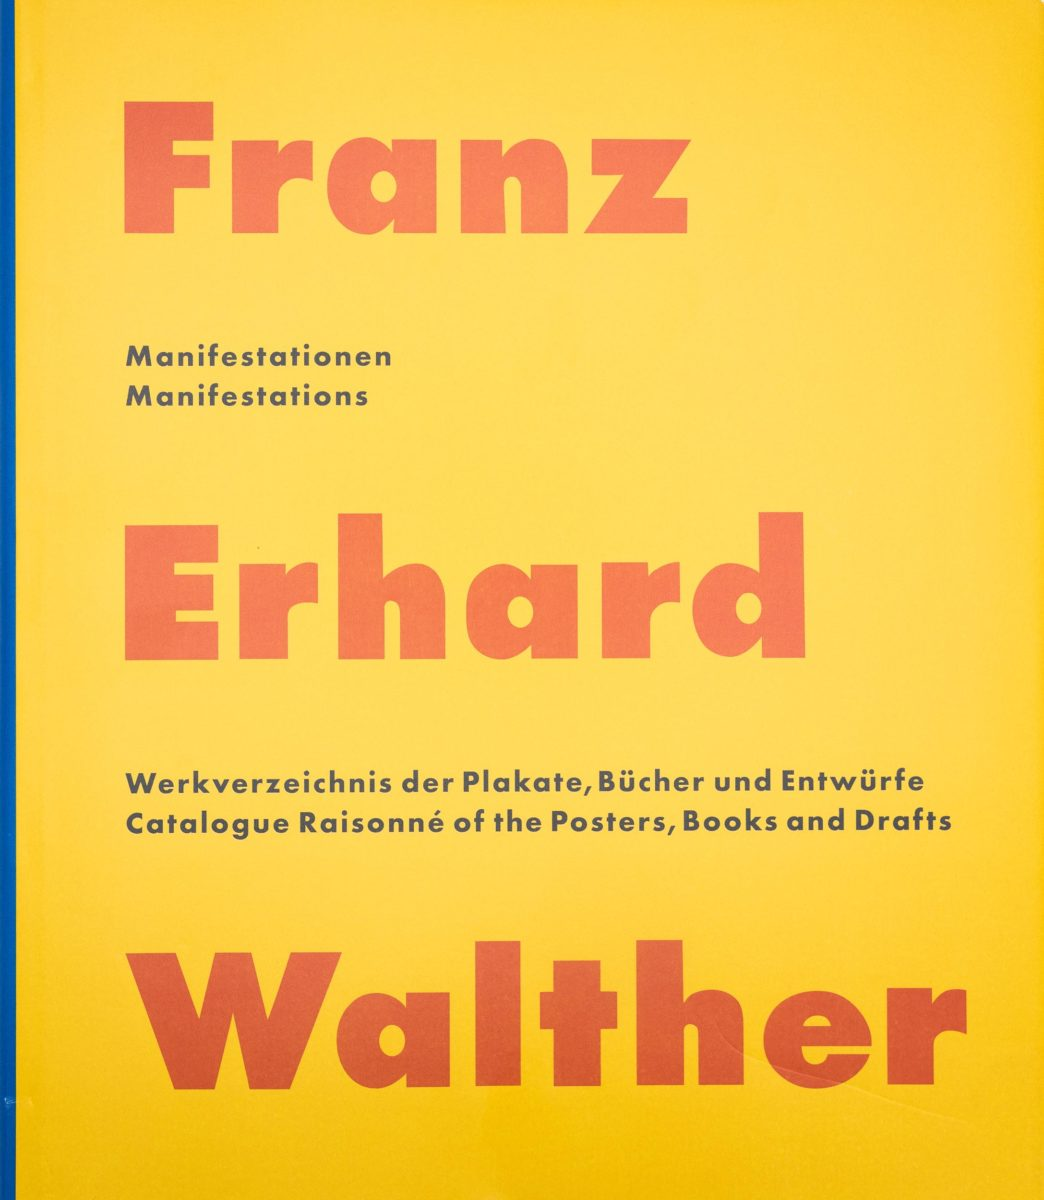 Franz Erhard Walter, Manifestations - Catalogue Raisonné of the Posters, Books and Drafts